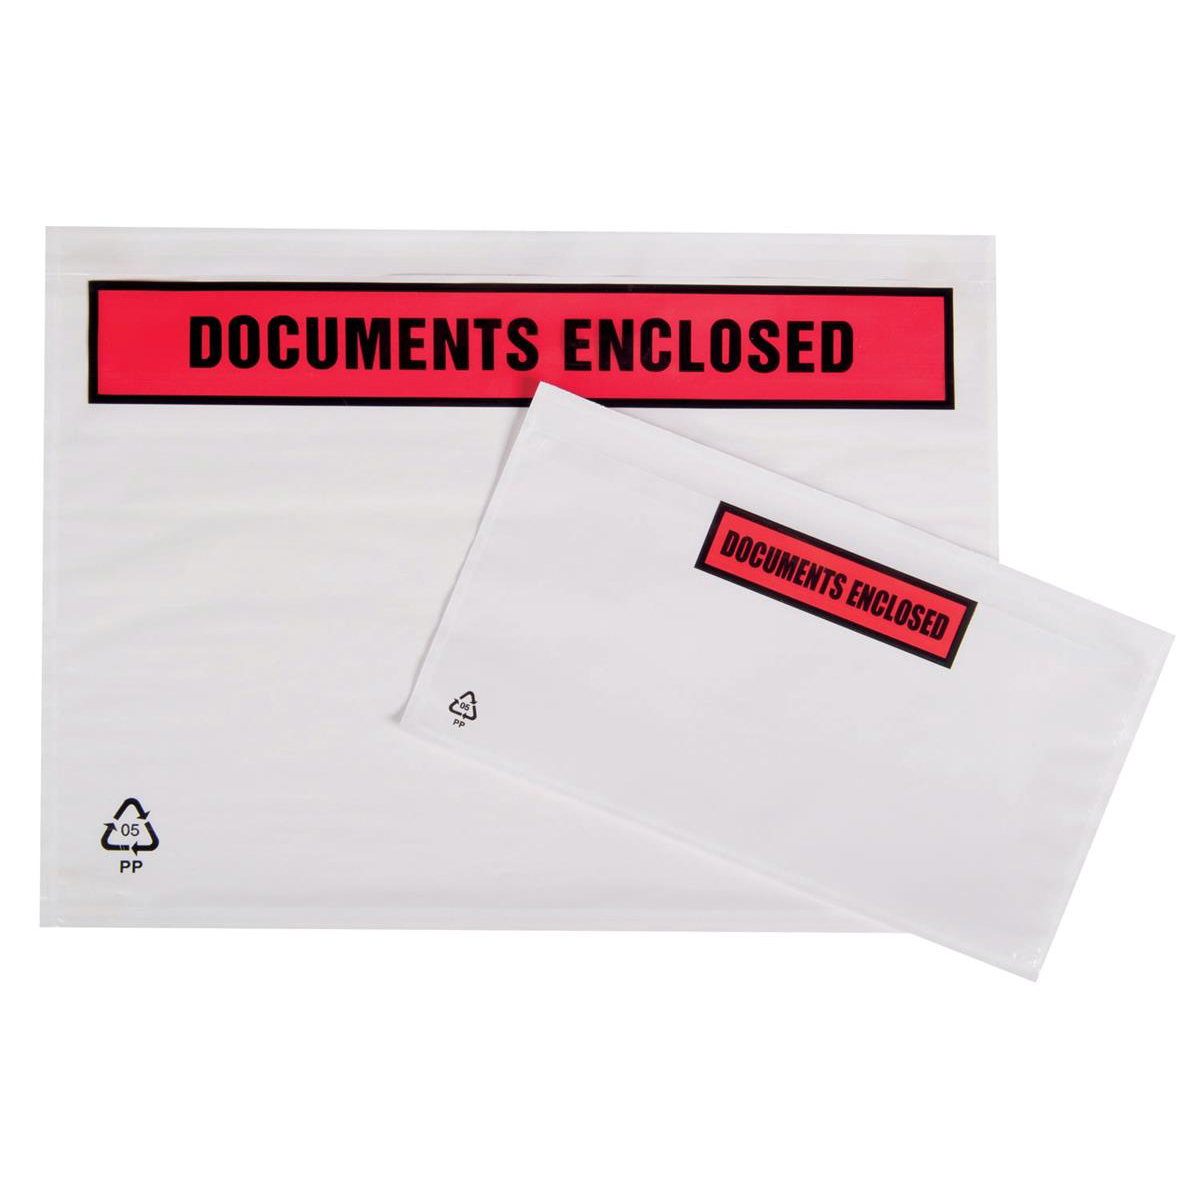 Packing List Document Wallet Polythene Documents Enclosed Printed Text A6 158x110mm White [Pack 1000]